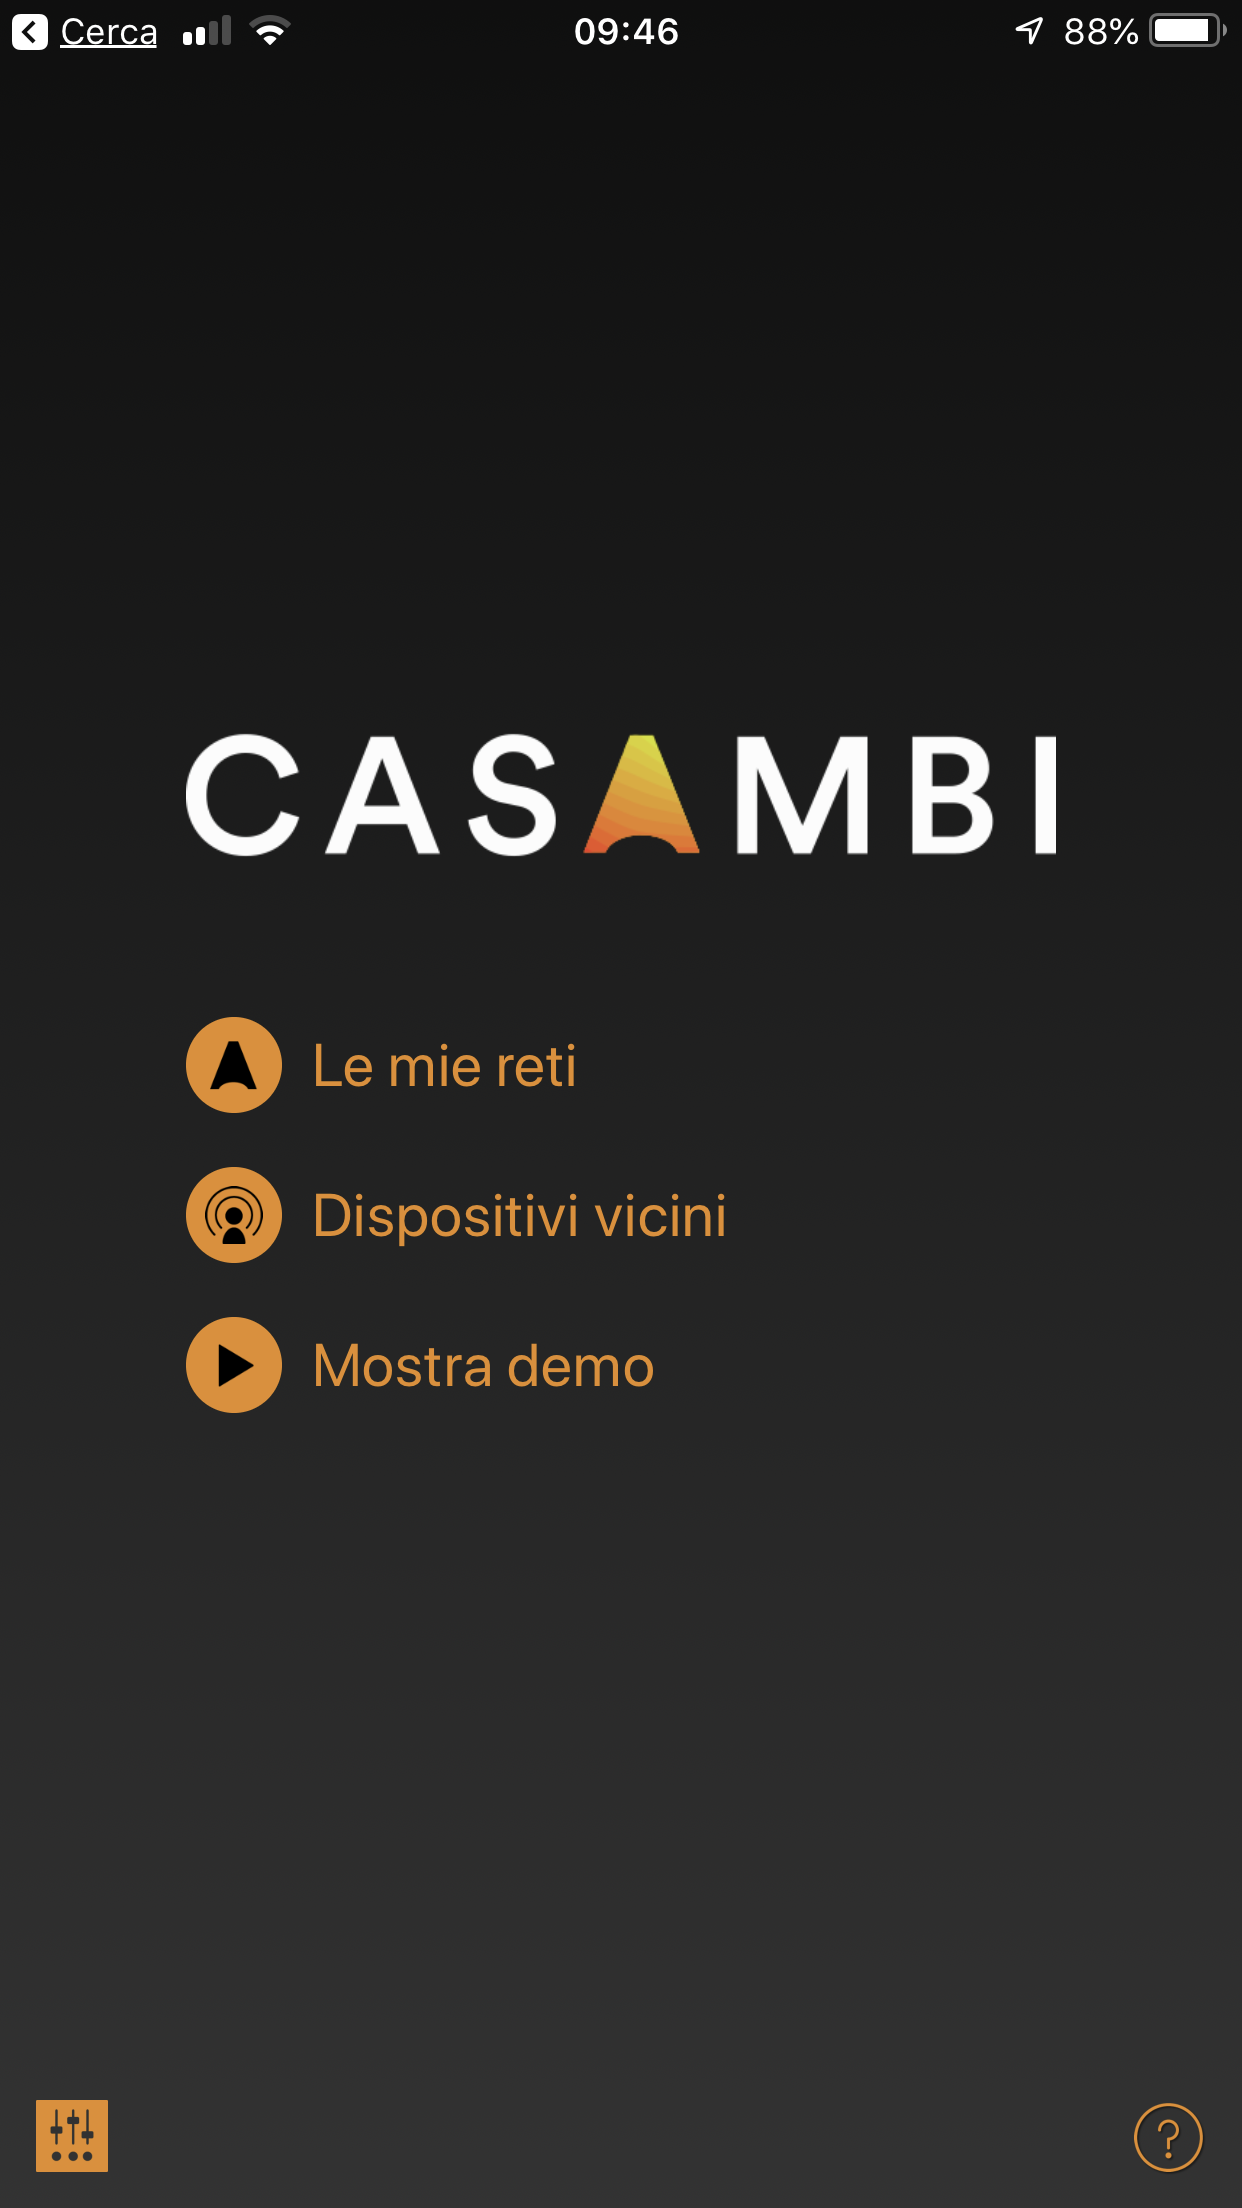 casambi application